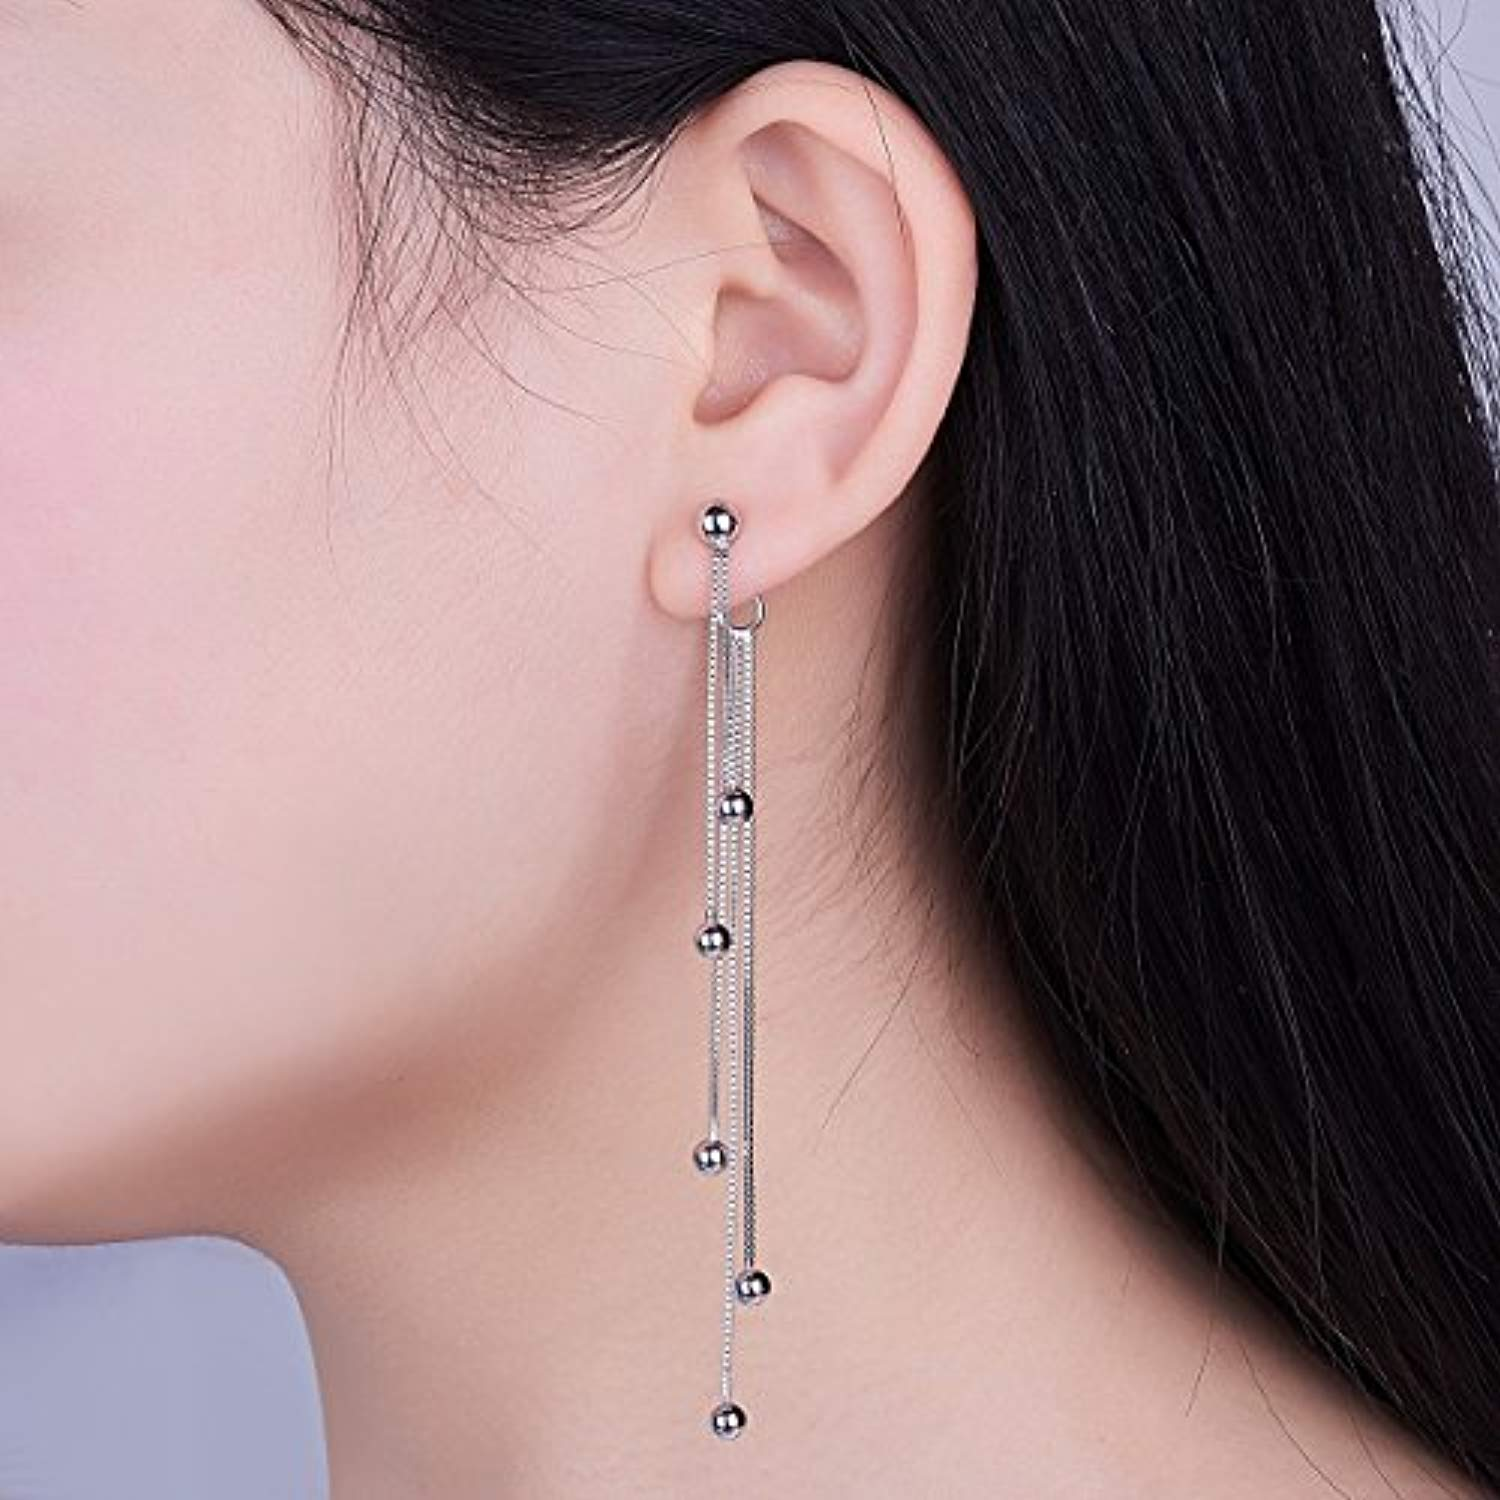 925 Sterling Silver Bead Dangling Drop Earrings, Long Chain Earrings for Women